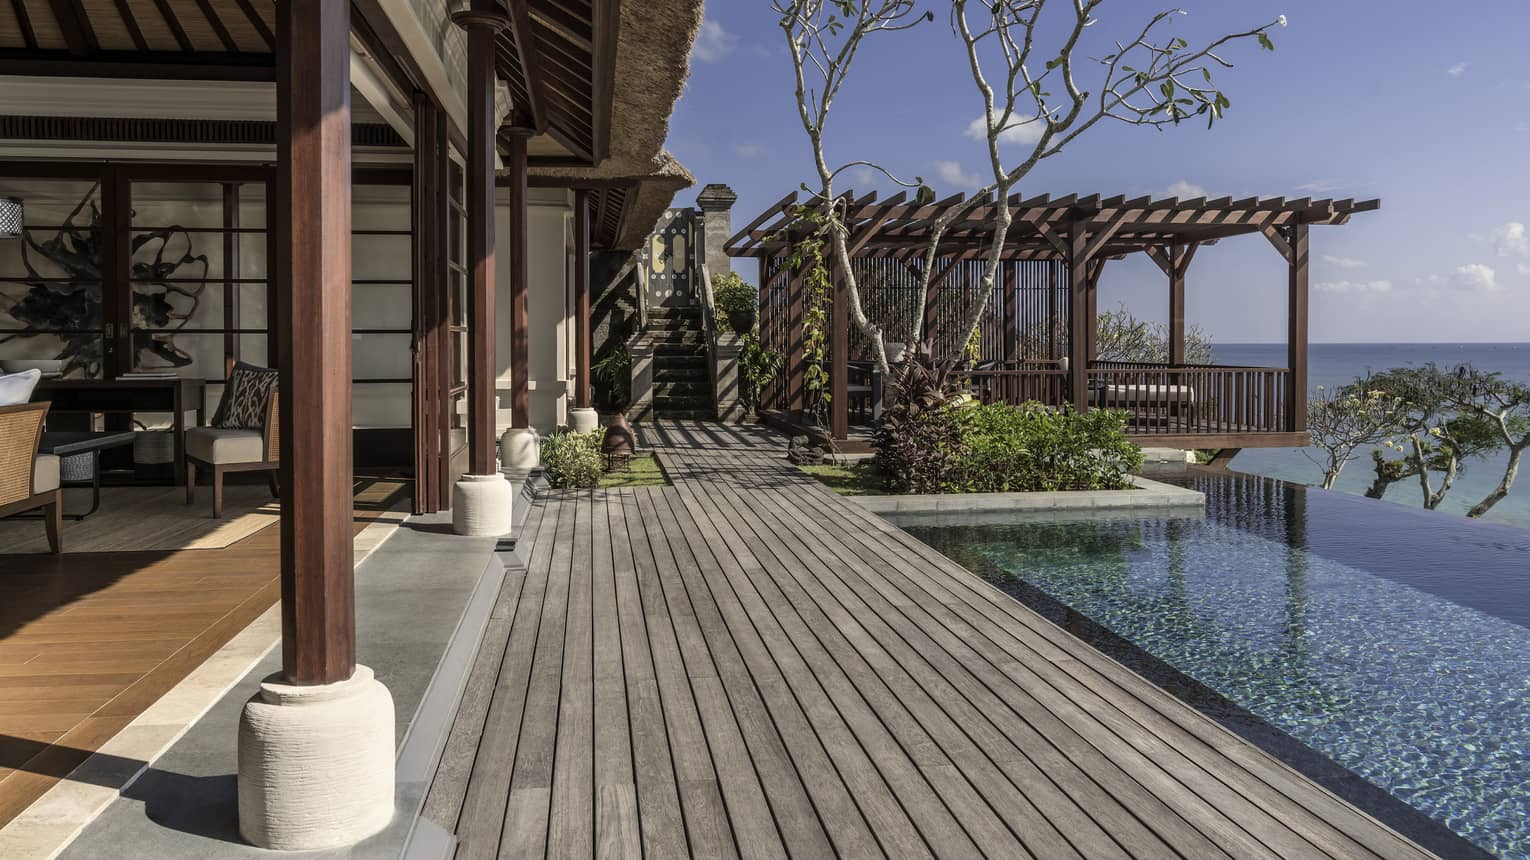 Royal villa wood patio boards, wood pillars, infinity pool looking out at ocean